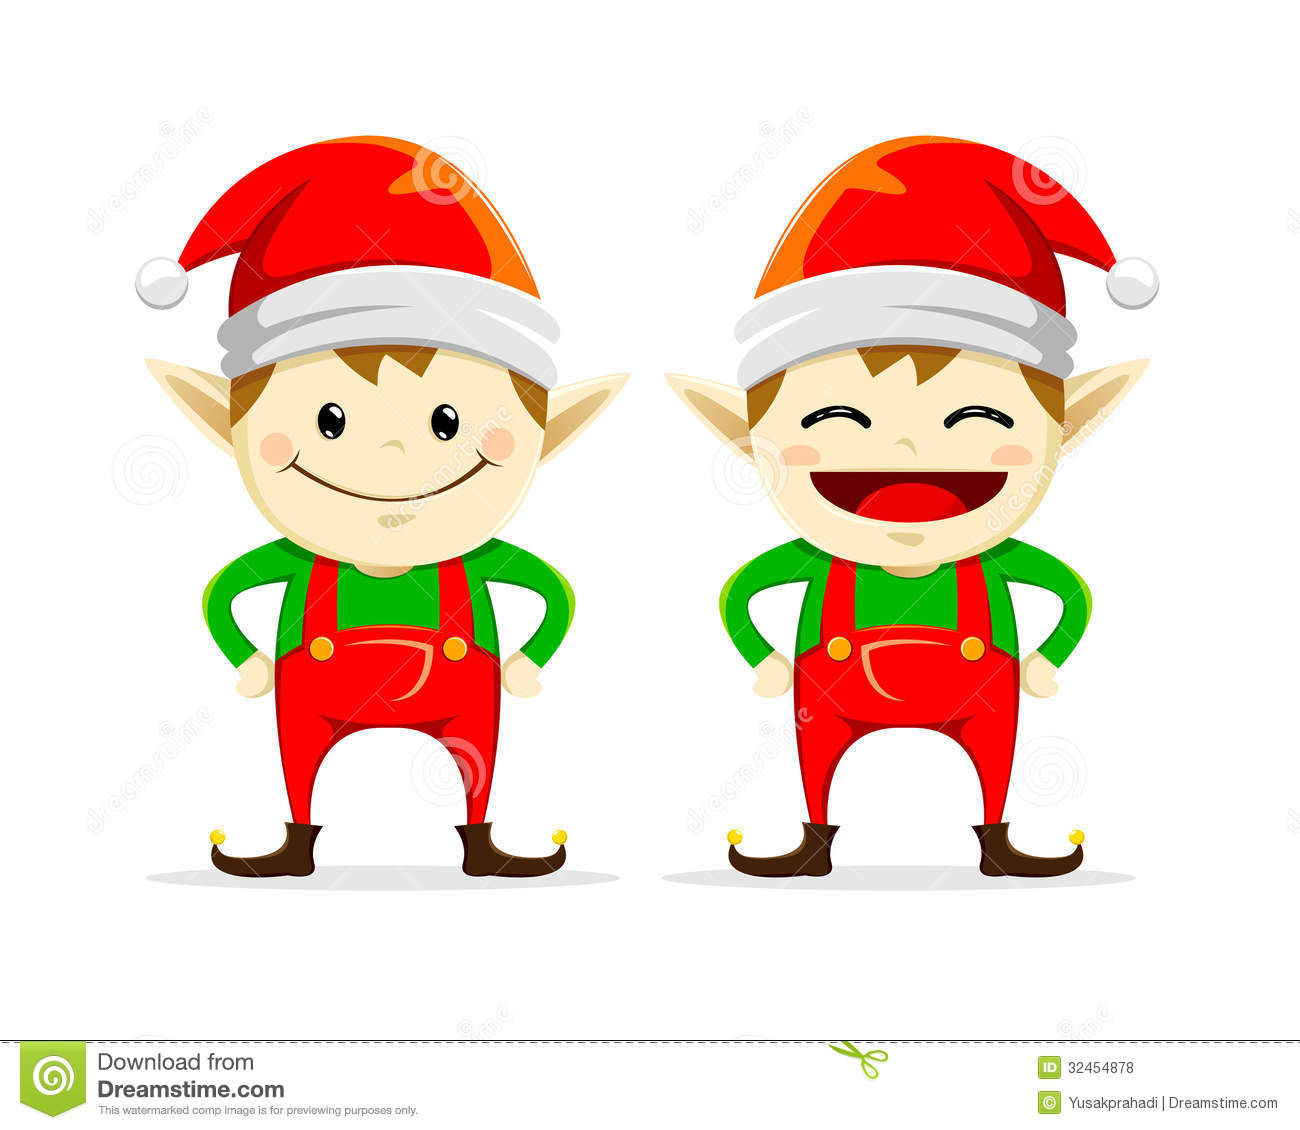 Christmas Elf twin stock vector. Illustration of cartoon - 32454878